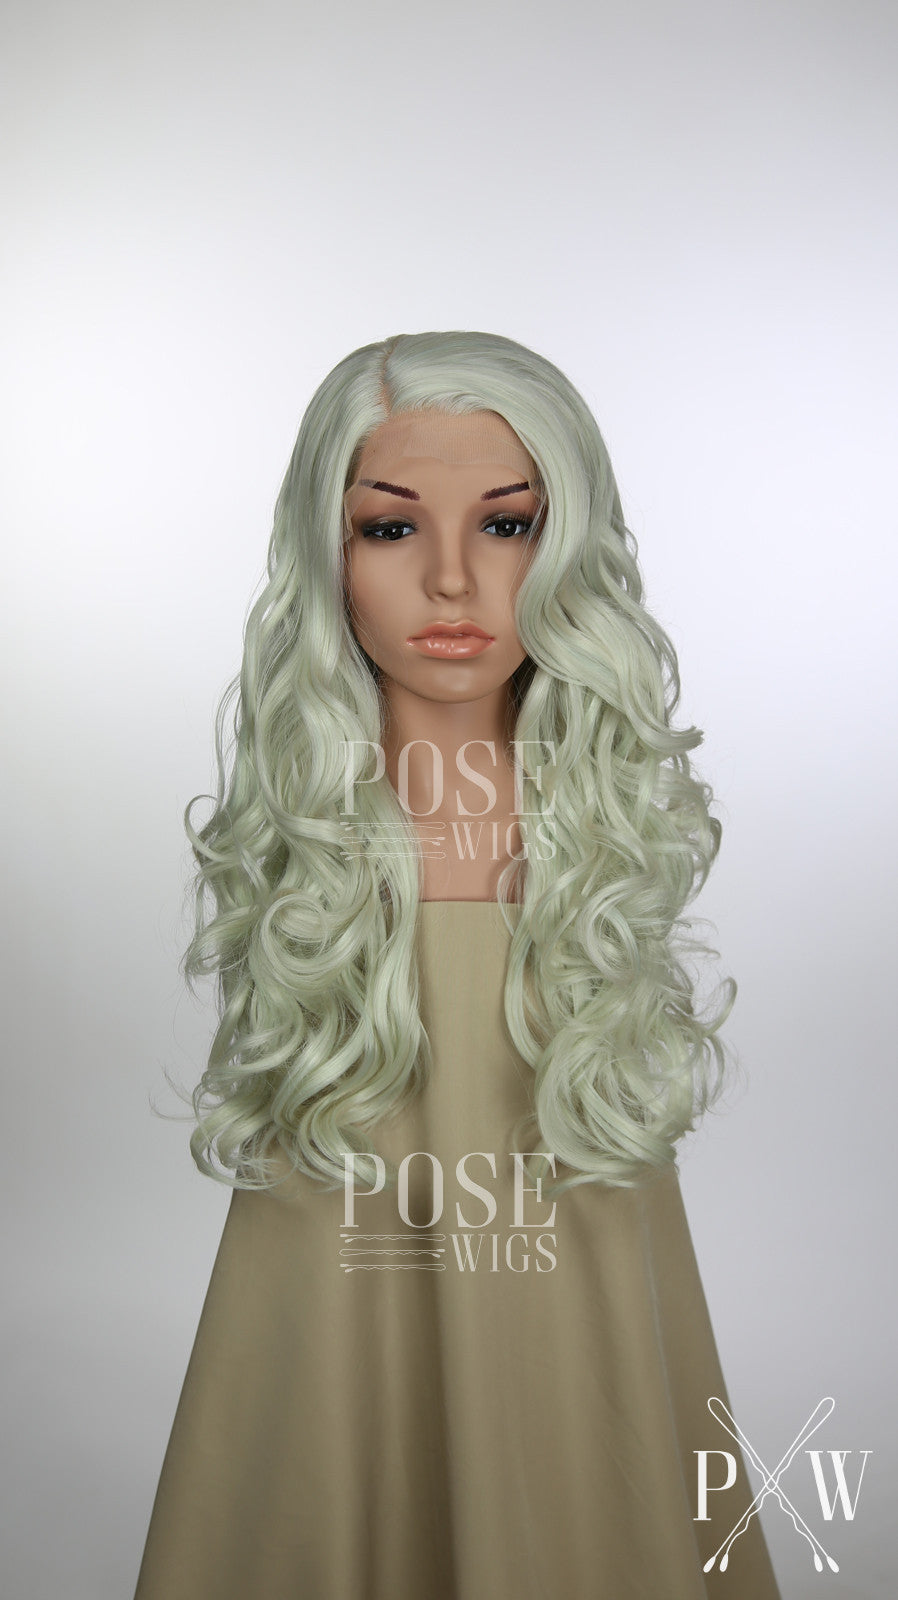 Pastel Rainbow Long Curly Lace Front Wig - White Blonde Silver Grey Pink Aqua Blue Green Princess Series LP098